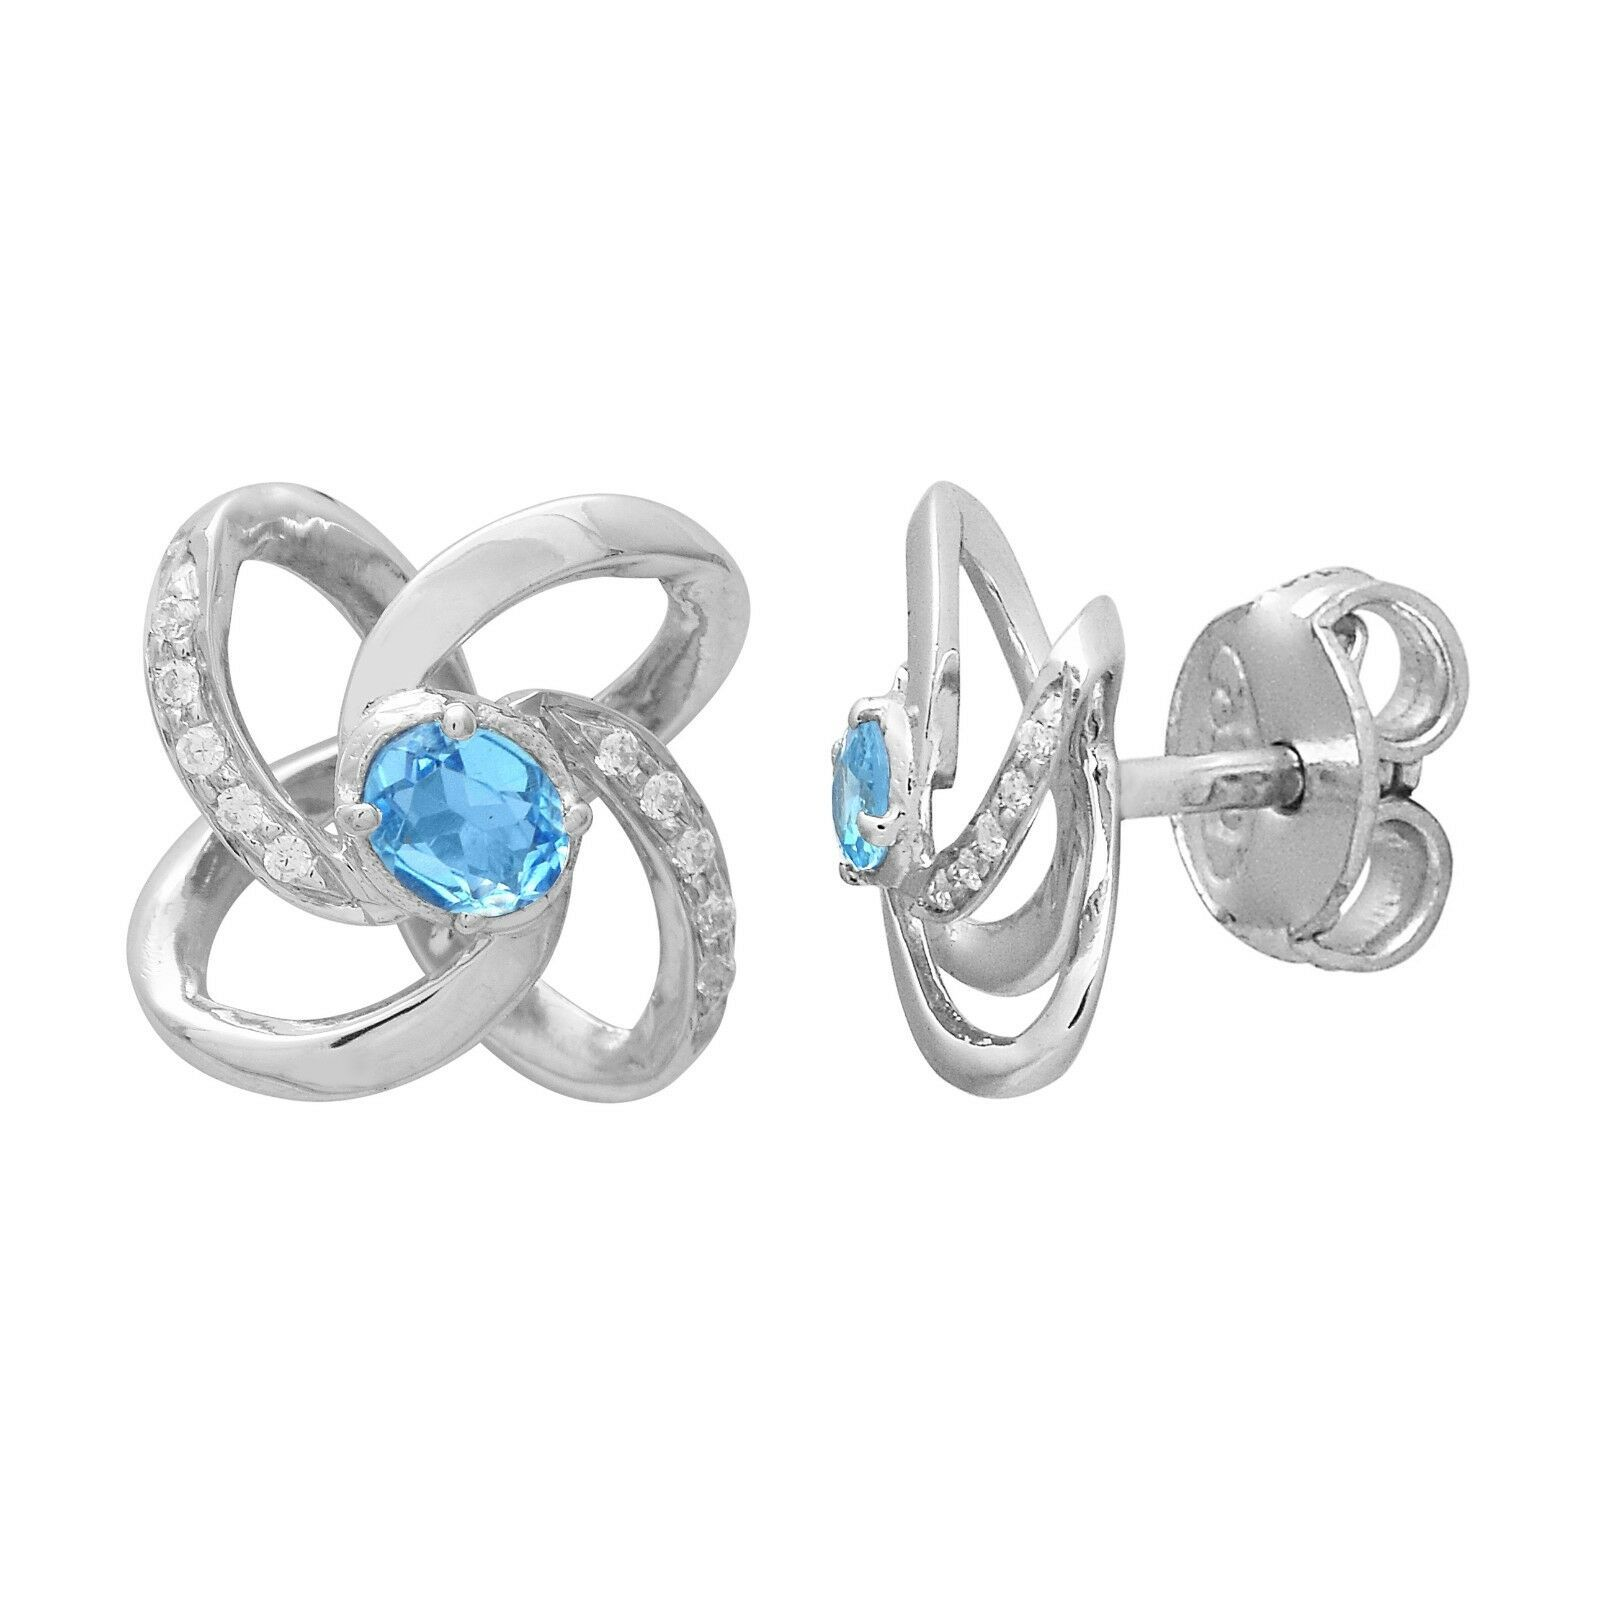 Love Infinity Knot Stud Earring Blue Topaz With CZ 925 Sterling Silver Jewelry